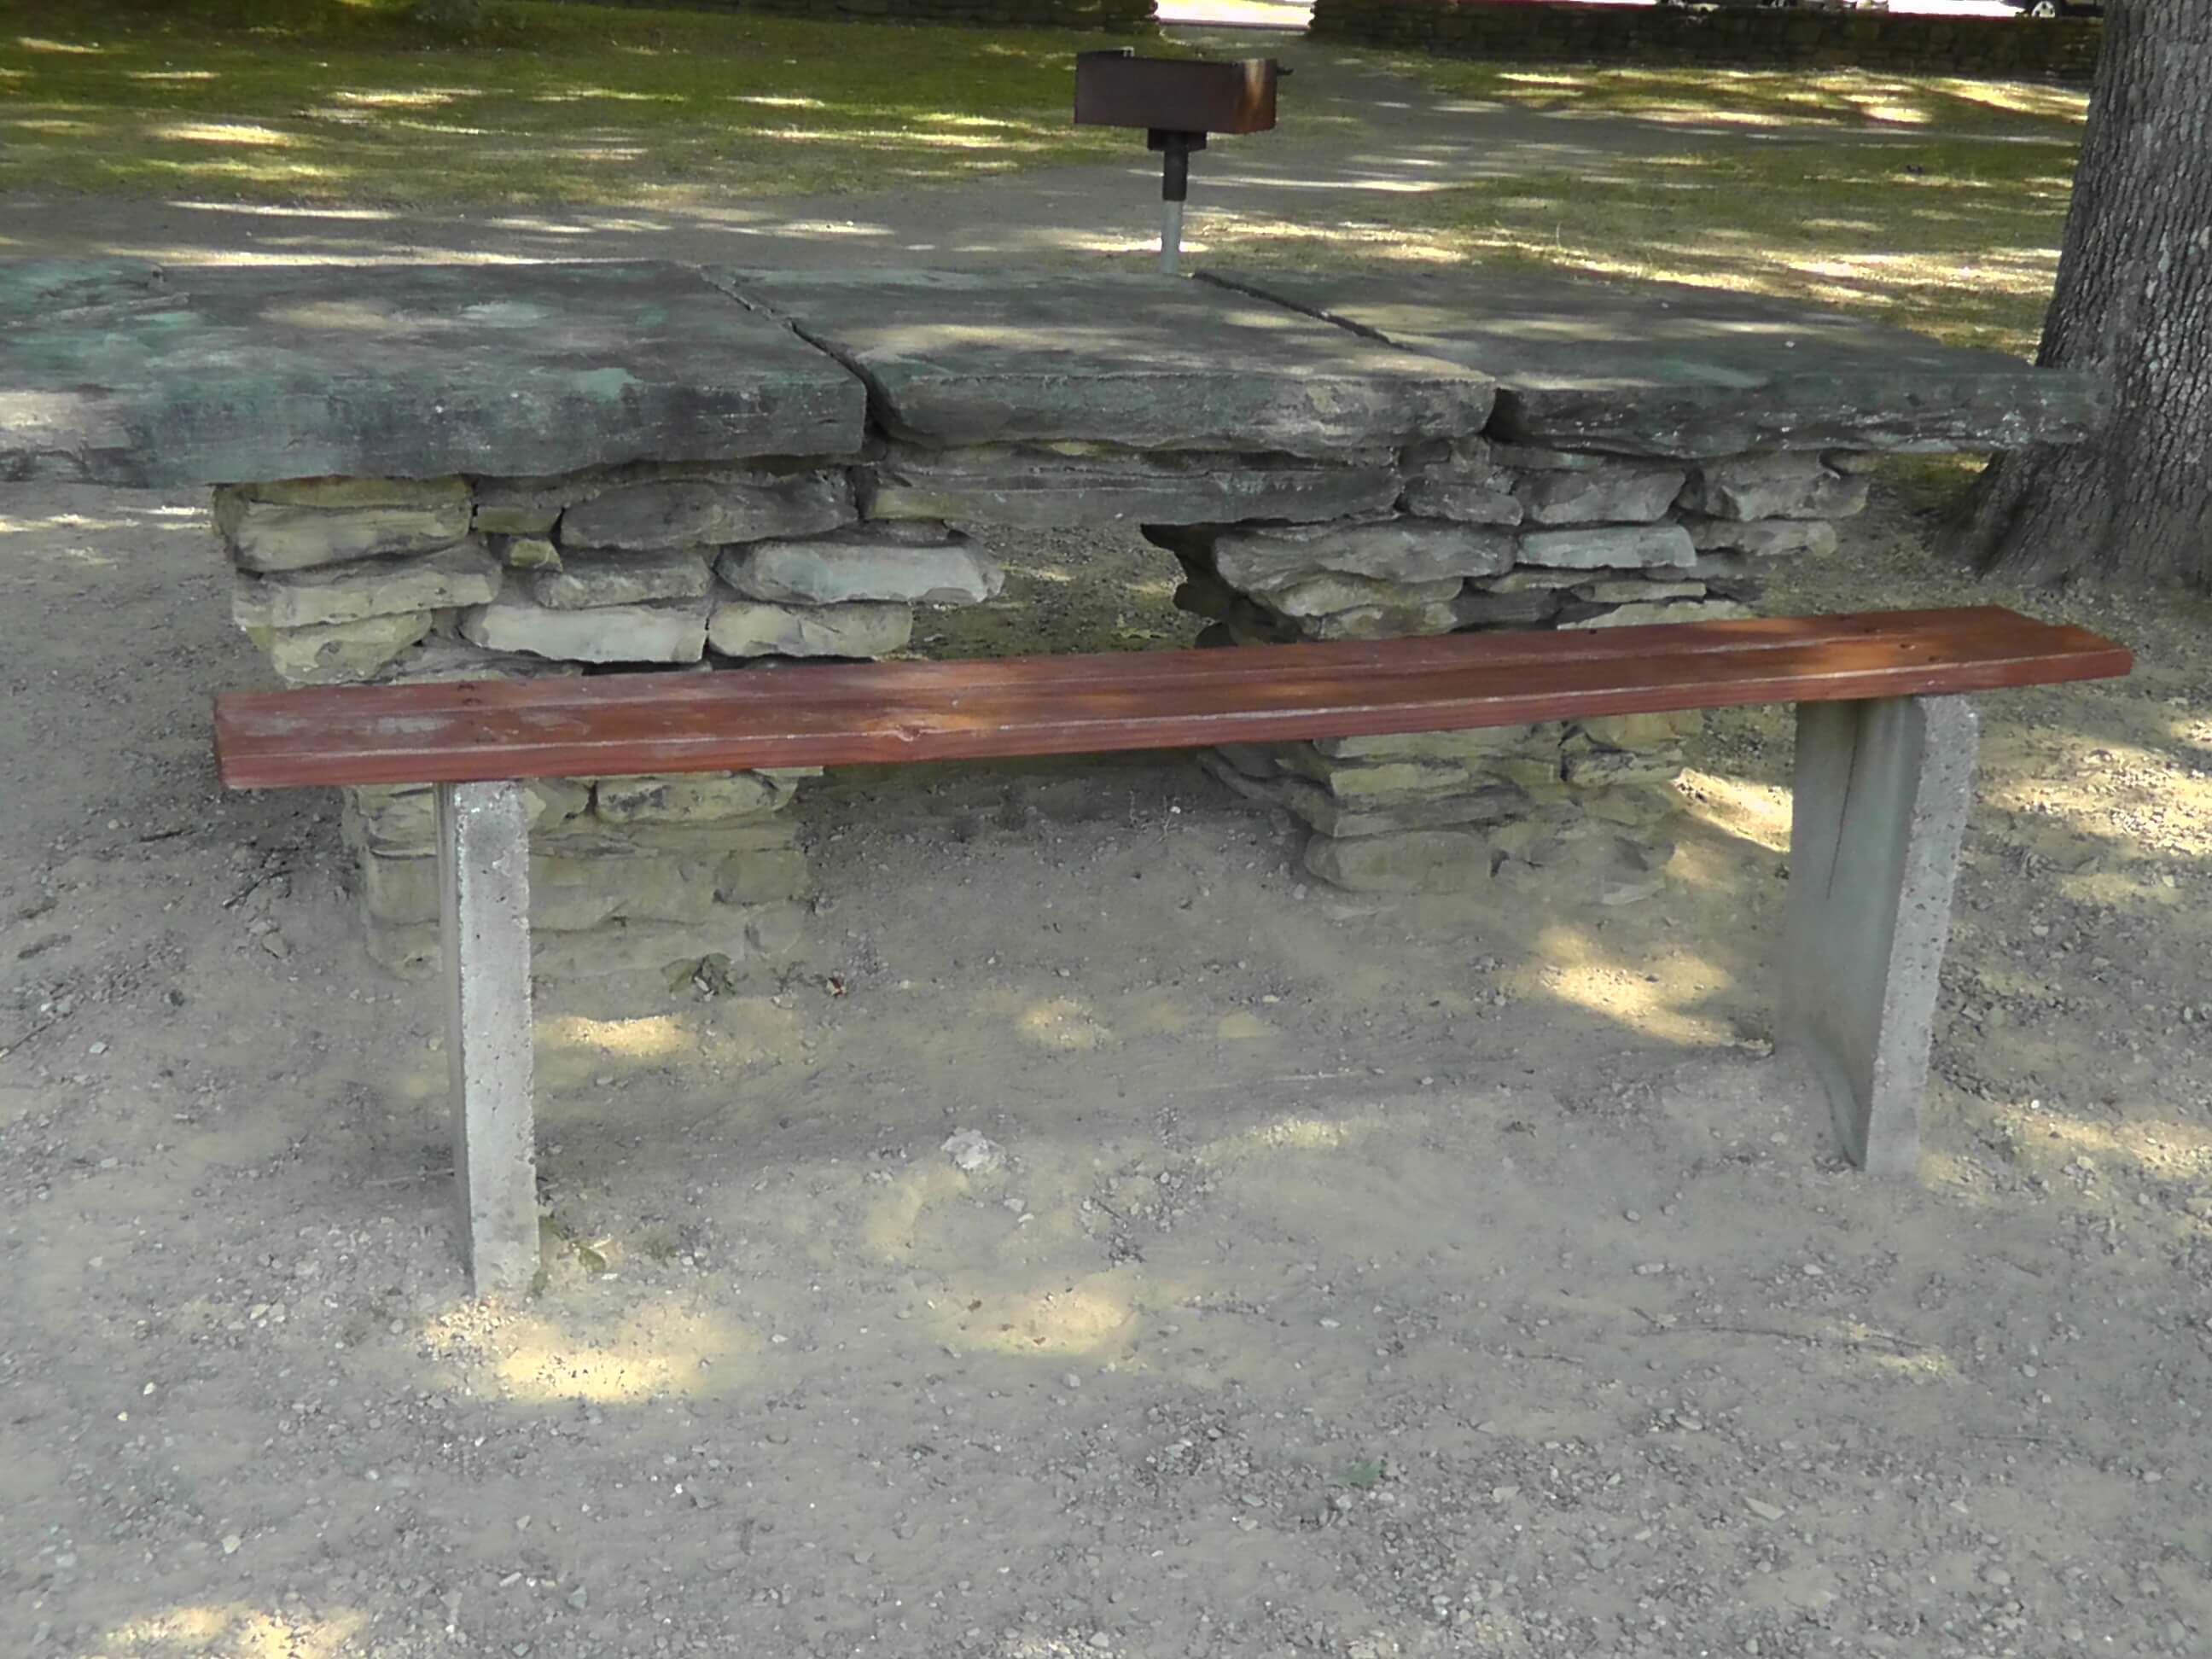 Picnic table, Letchworth State Park, New York